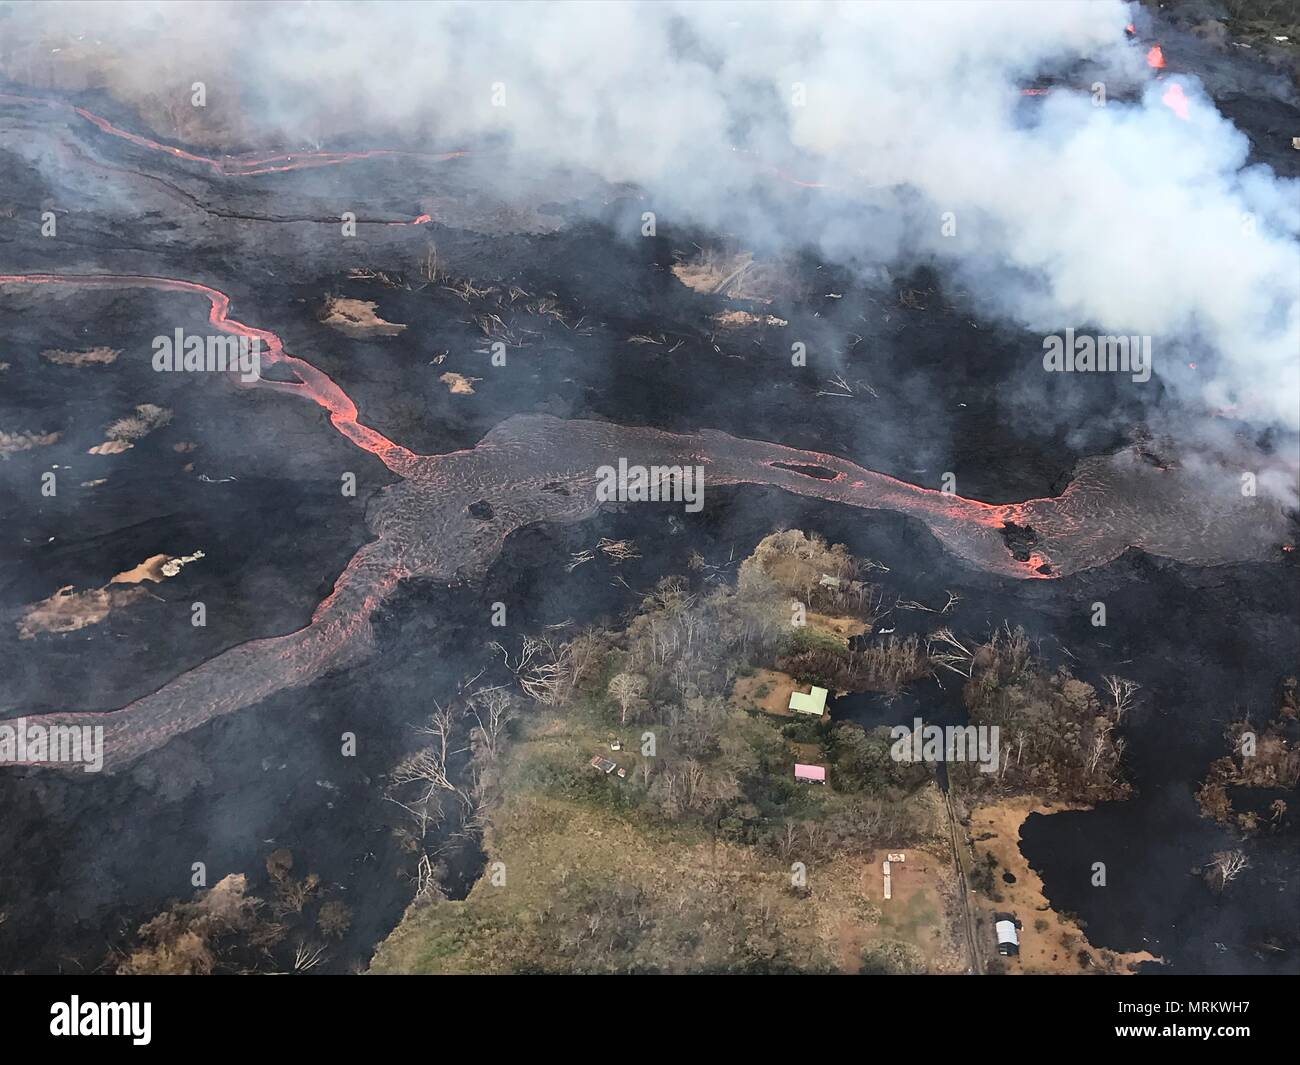 Channelized lava streams down fissure 22 in the East Rift Zone from the eruption of the Kilauea volcano May 23, 2018 in Pahoa, Hawaii.Stock Photo